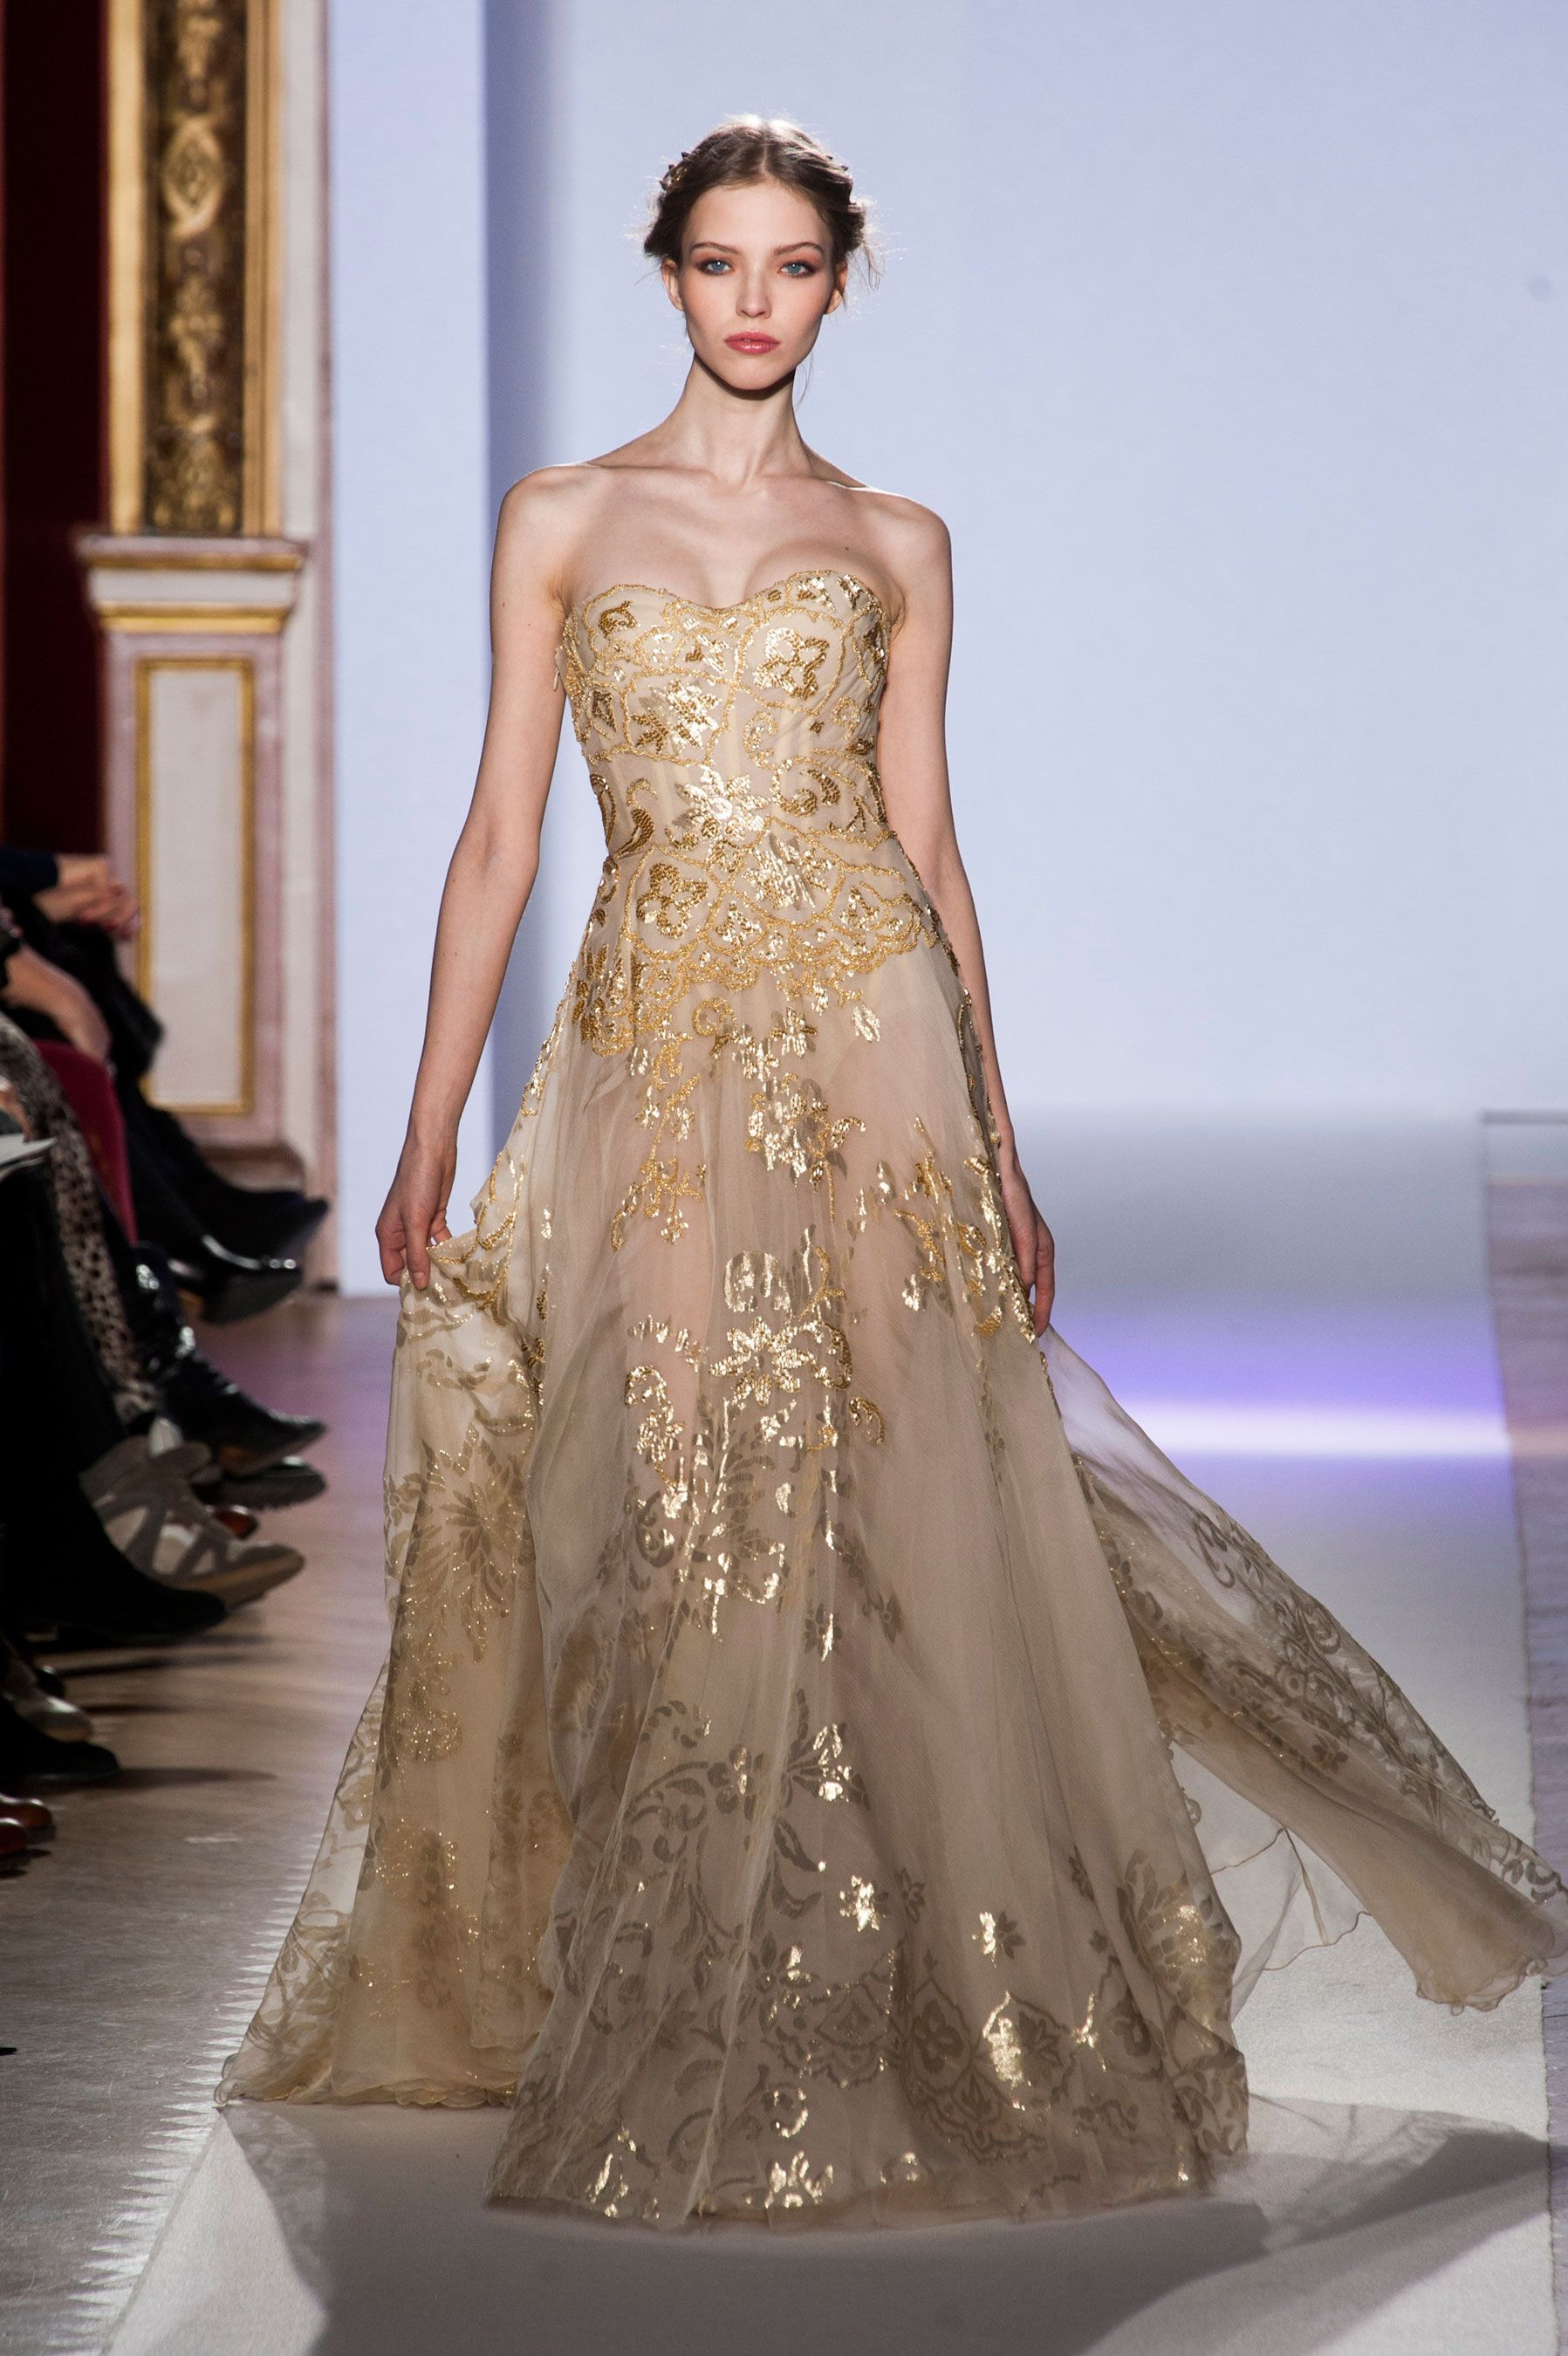 Zuhair murad hc su lace dresses dayslook new style lacedresses